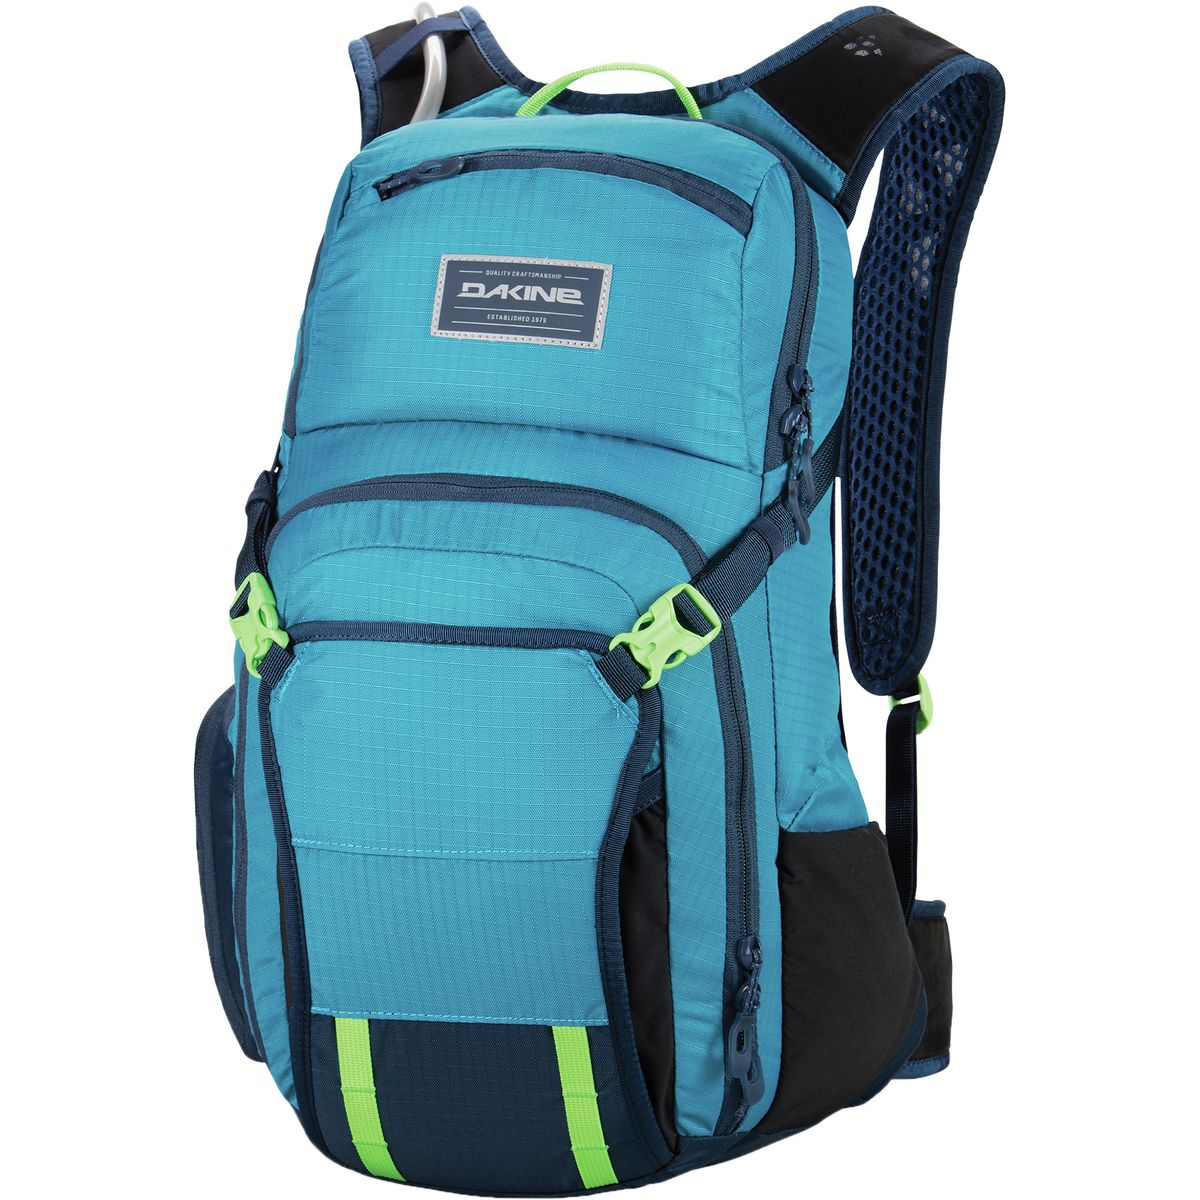 Xan Marshland reviews the Dakine Drafter 14L for Blister Review